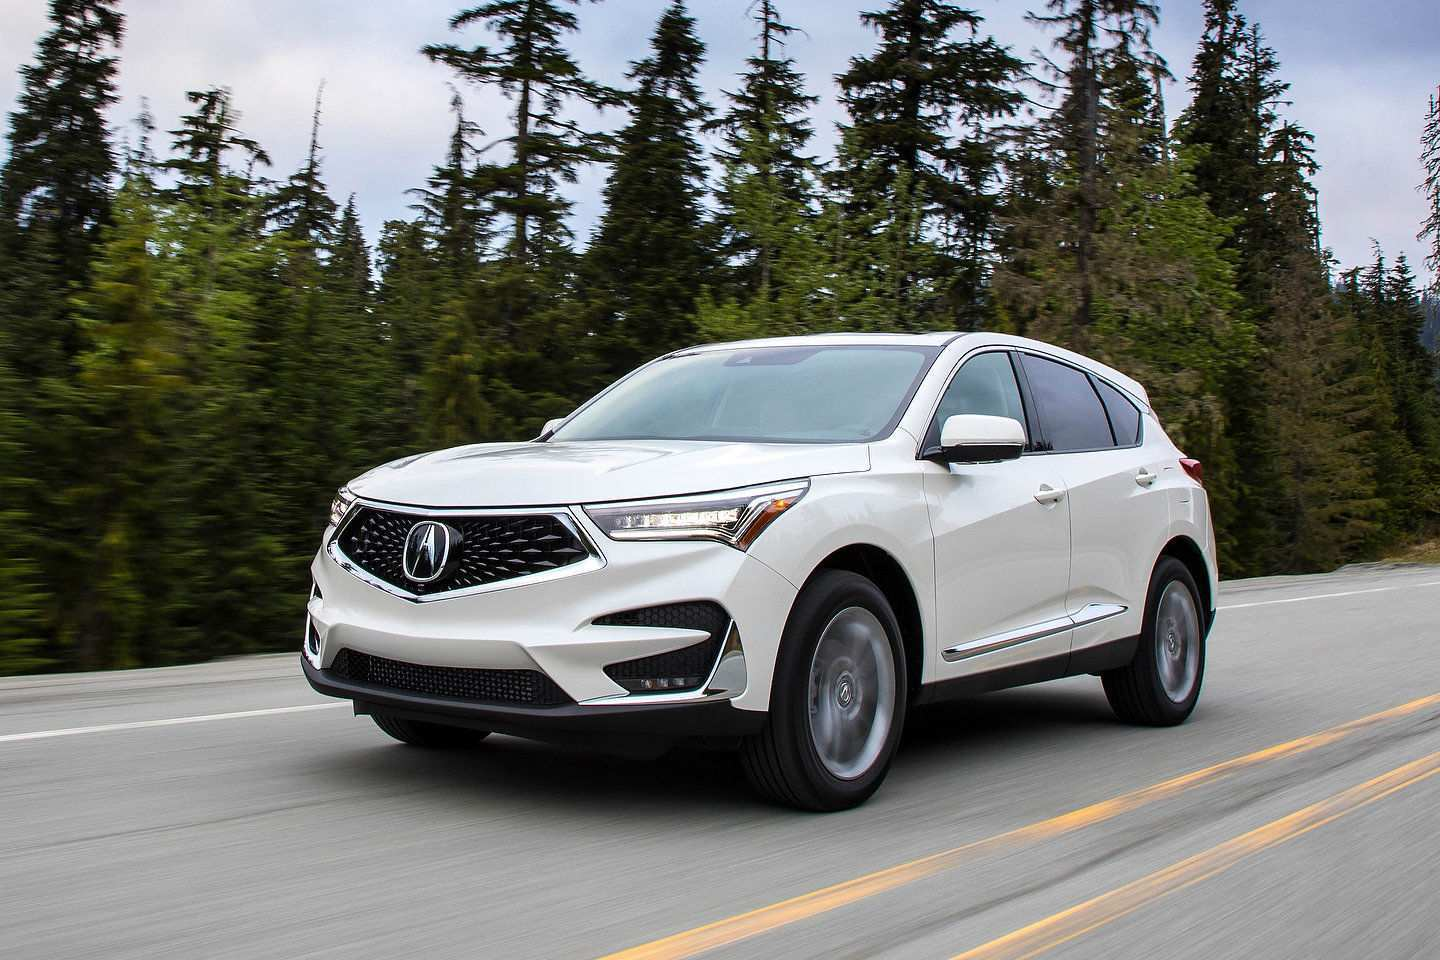 50 Concept of New Acura 2019 Vs 2018 Overview Redesign by New Acura 2019 Vs 2018 Overview